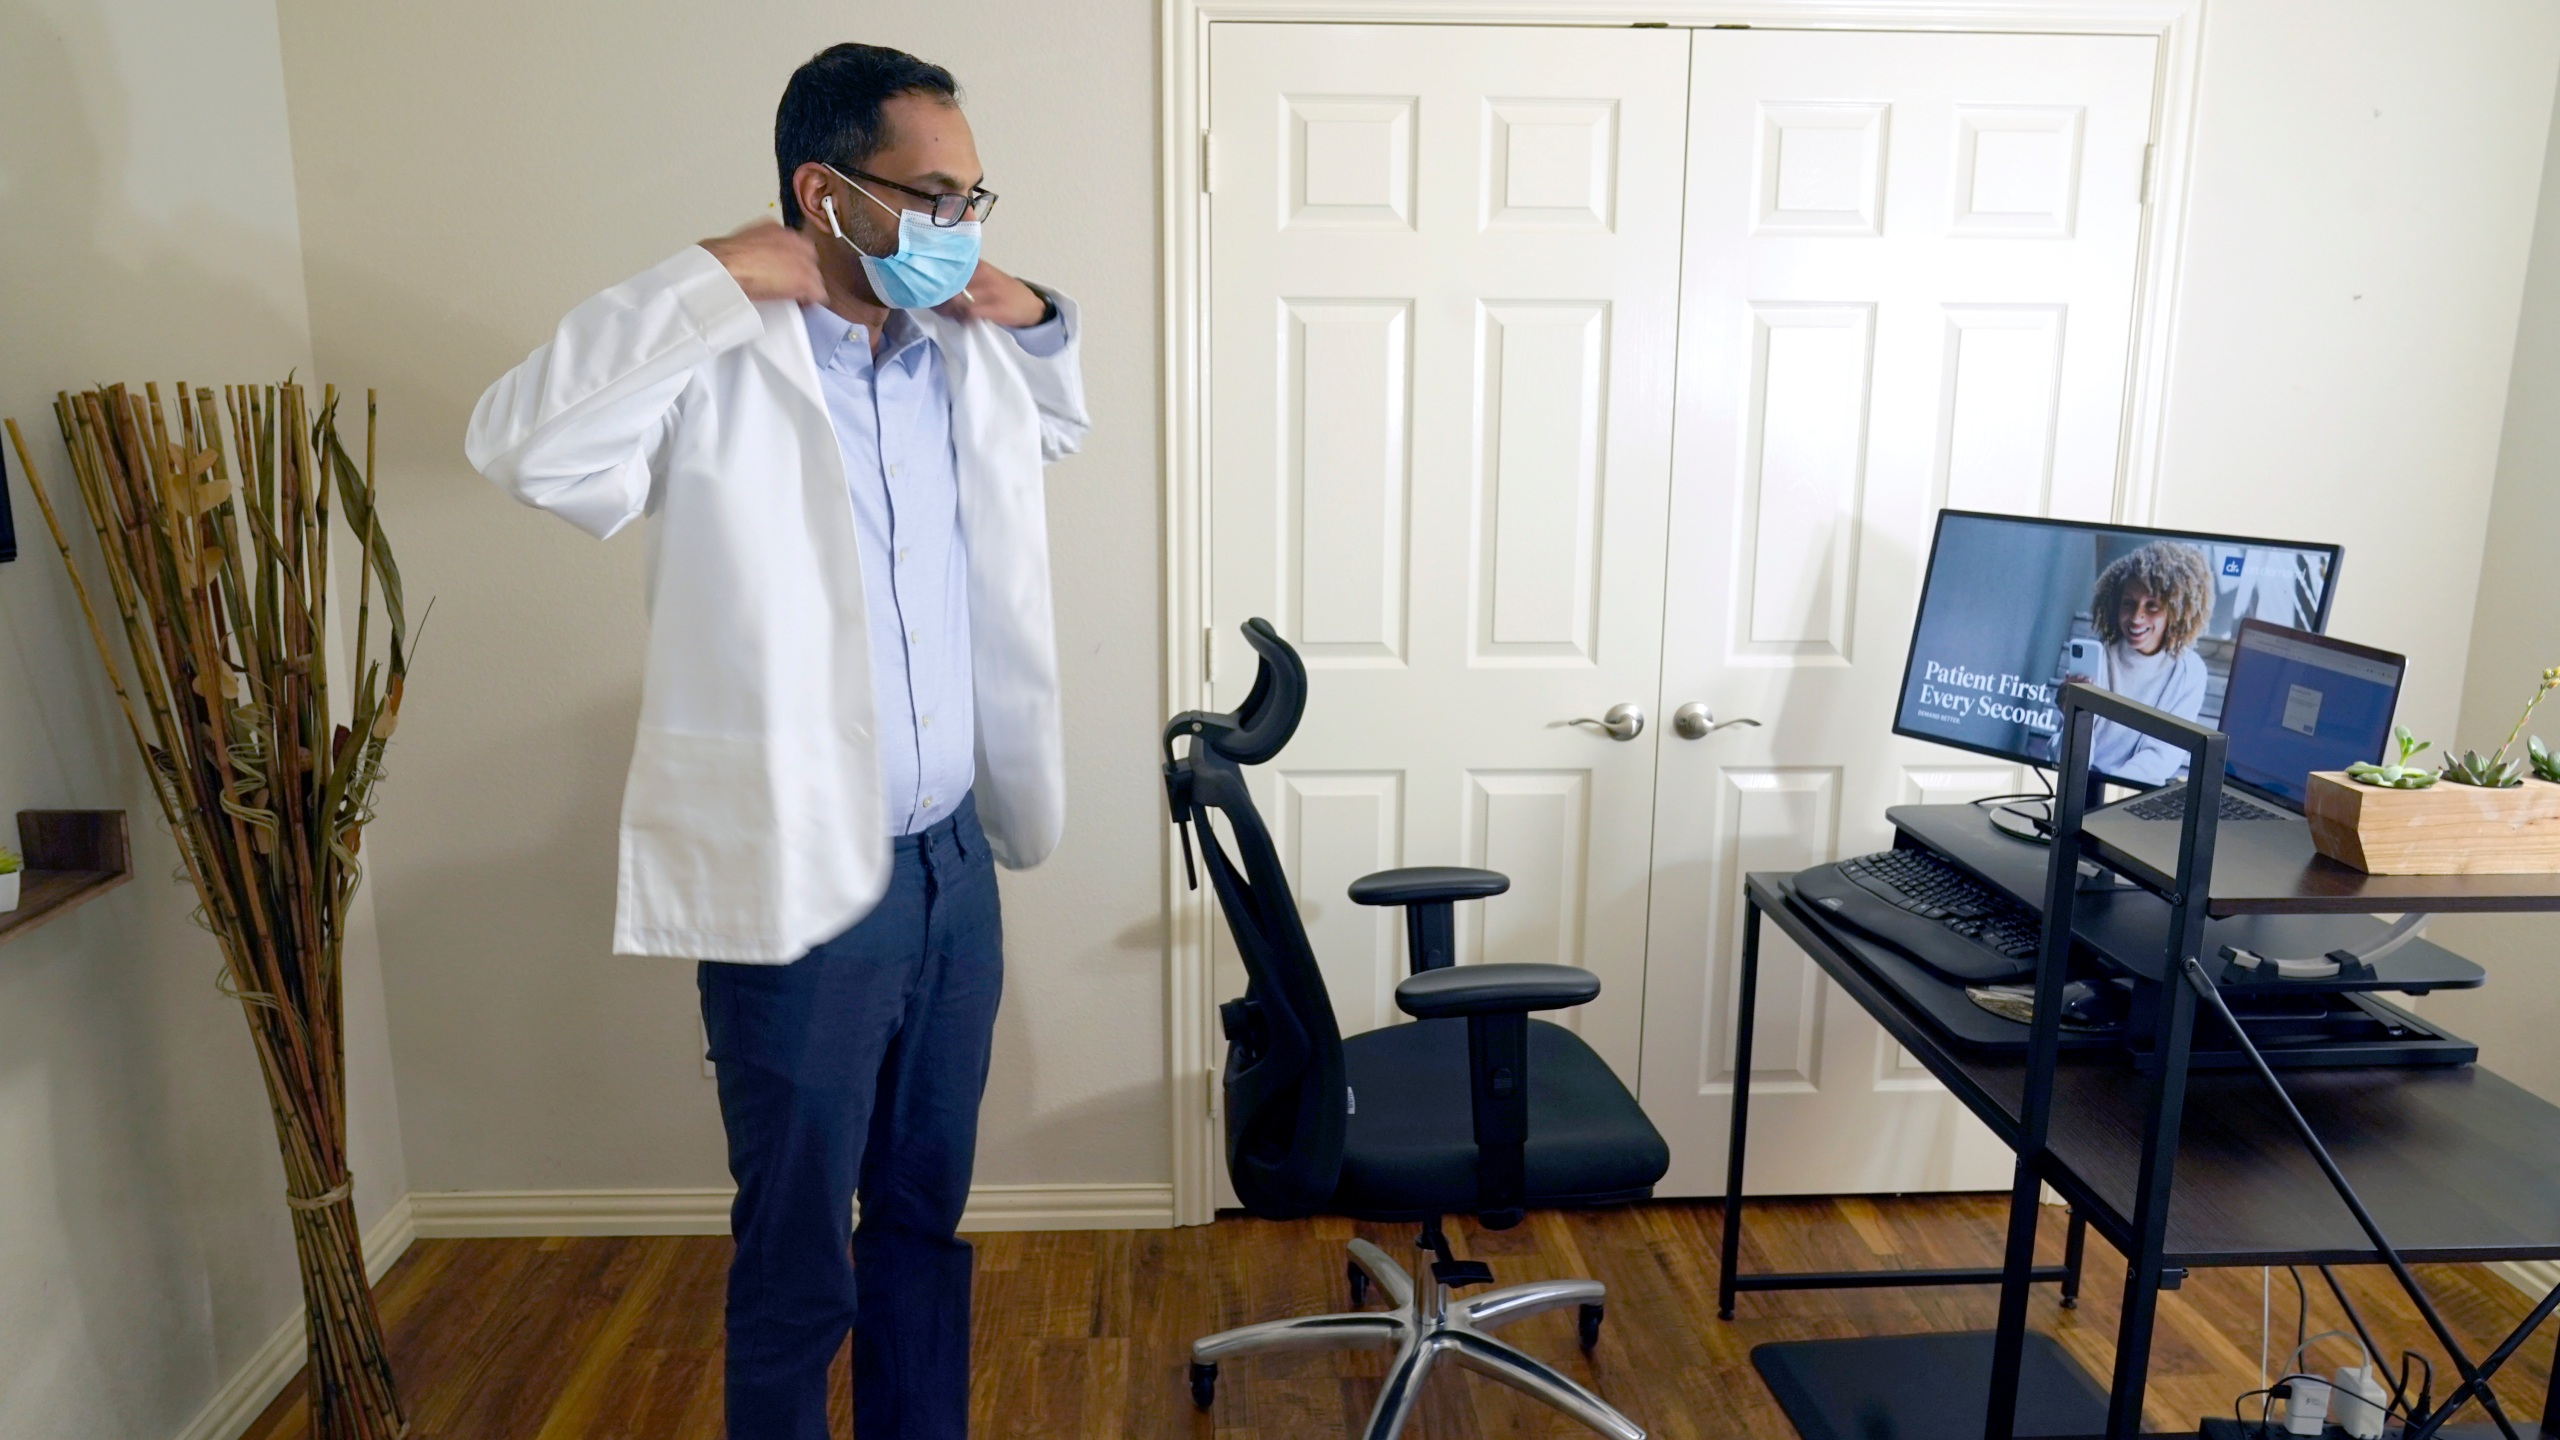 Medical director of Doctor on Demand Dr. Vibin Roy prepares to conduct an online visit with a patient from his work station at home, Friday, April 23, 2021, in Keller, Texas. (AP Photo/LM Otero)